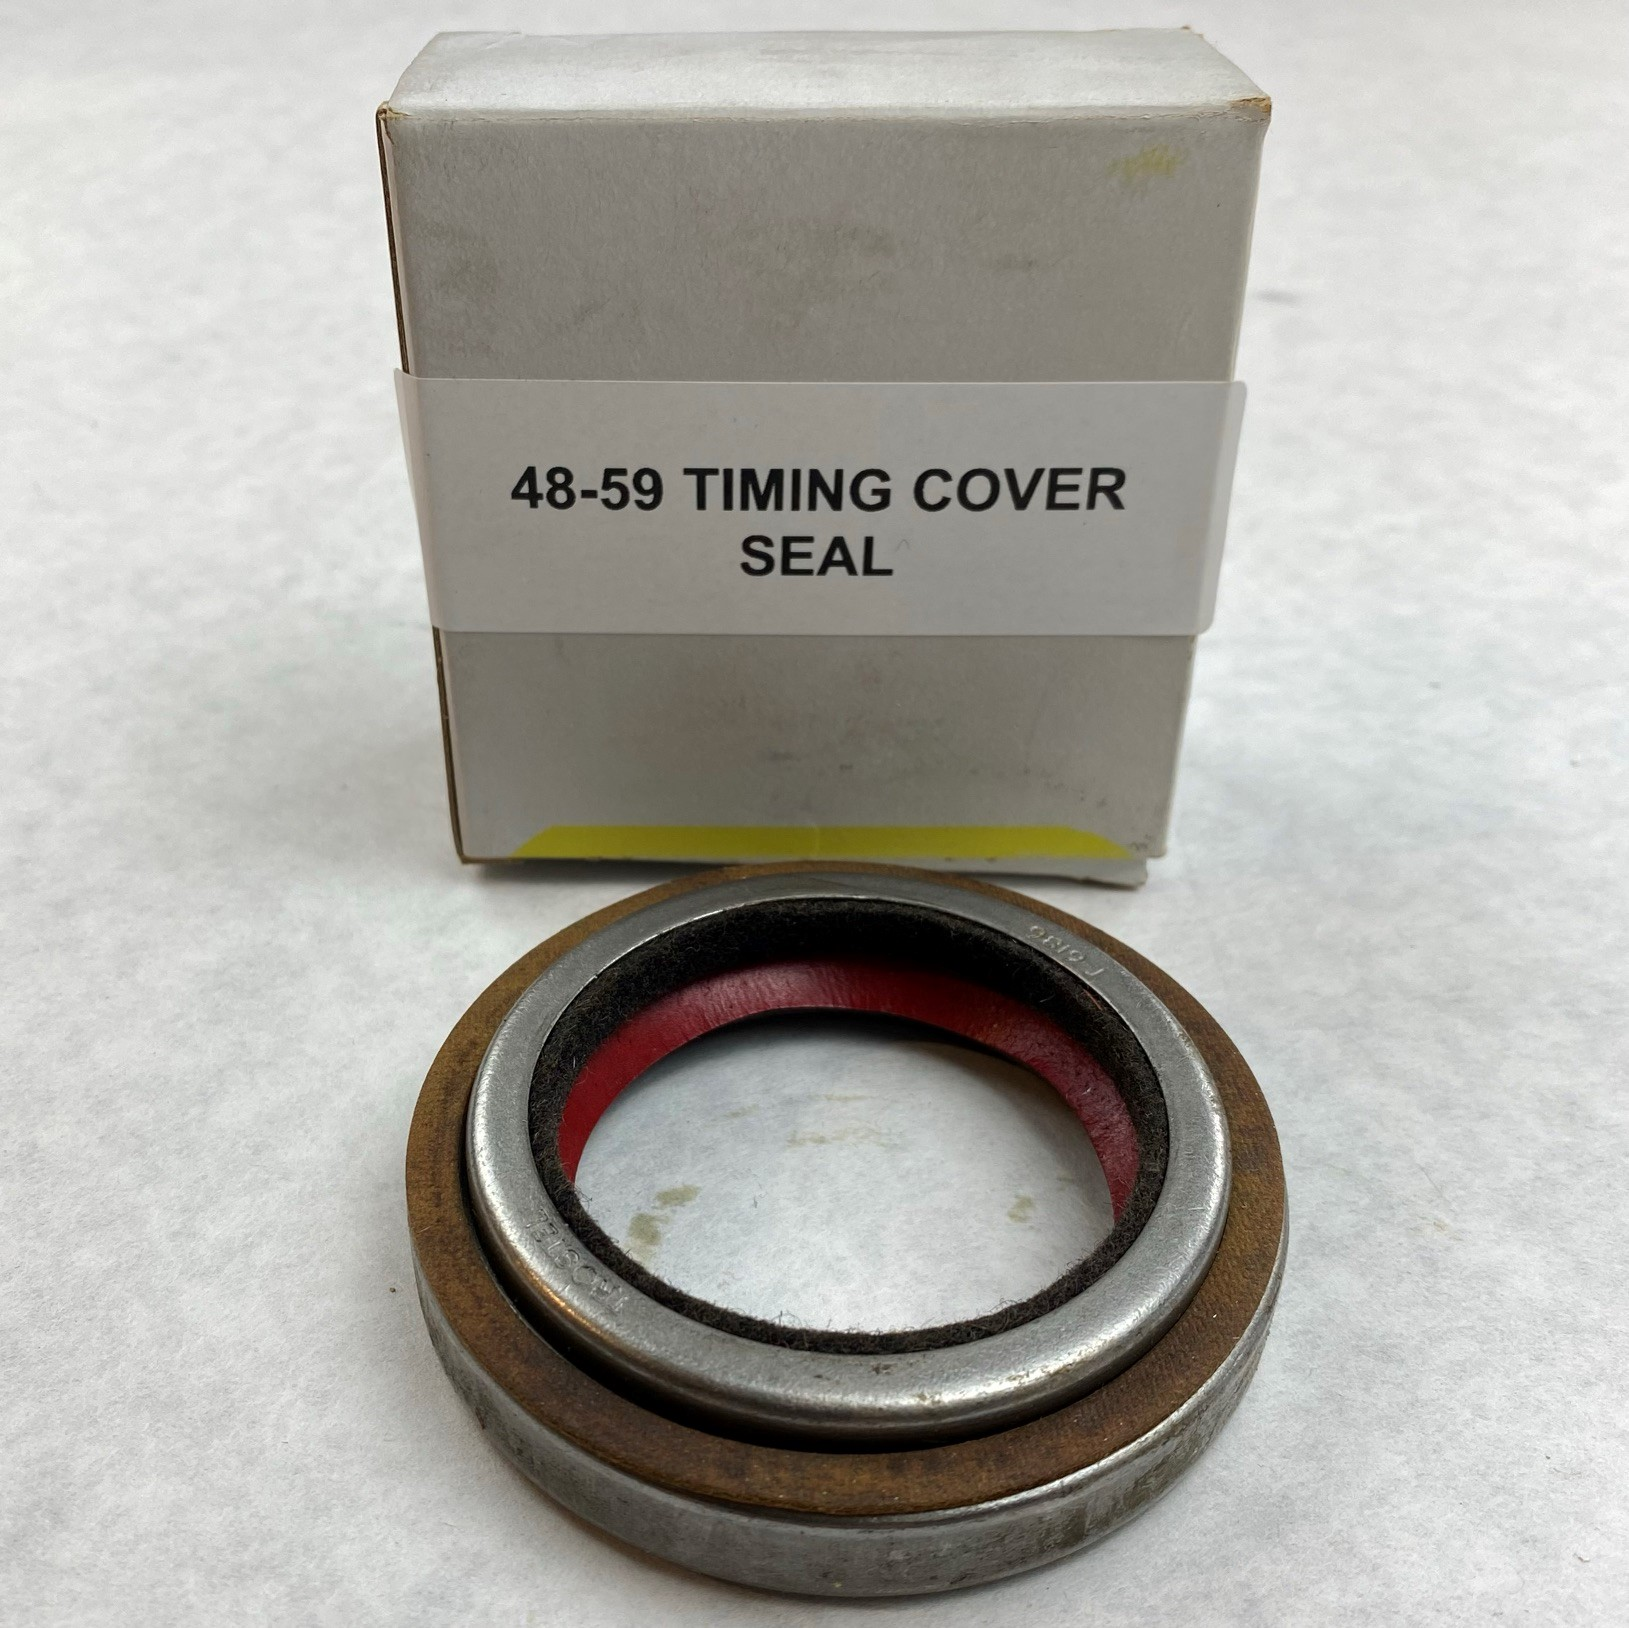 48-59 TIMING CHAIN COVER SHAFT SEAL